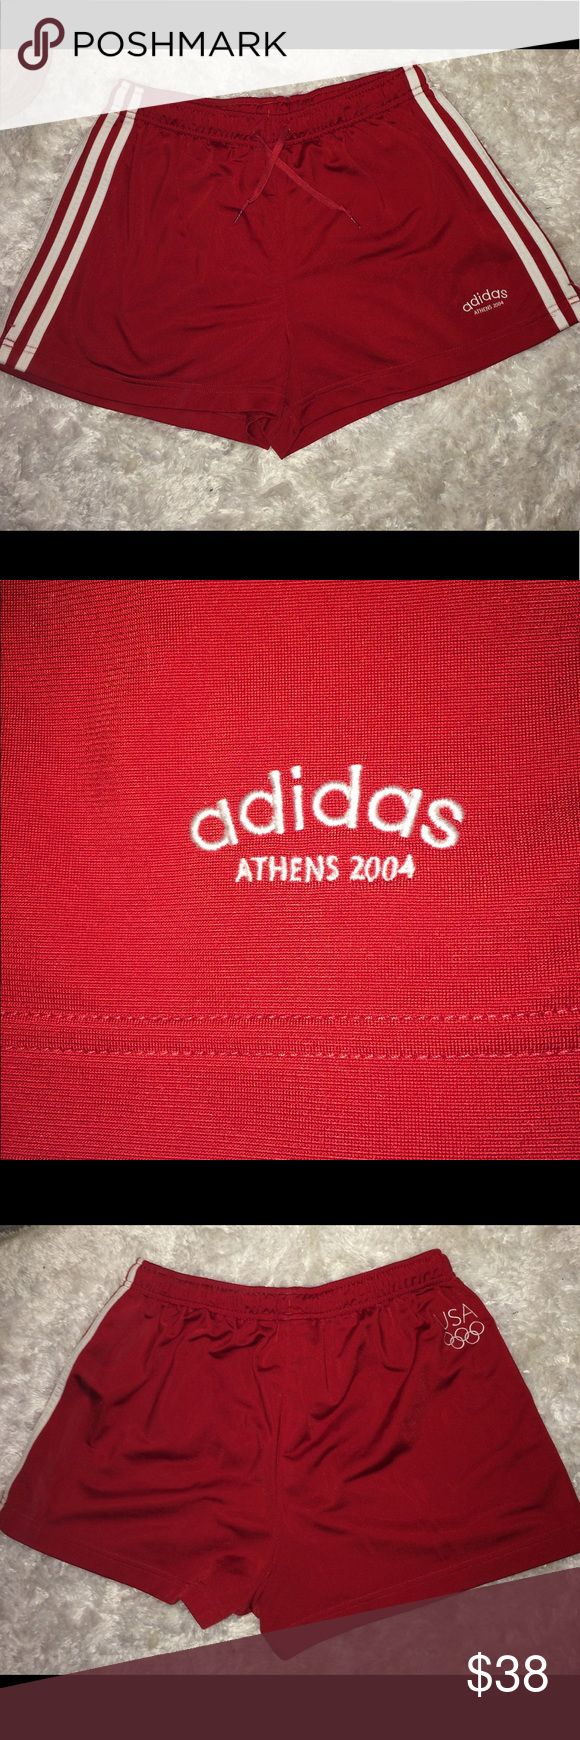 Adidas women's shorts Large From the 2004 Athens OLYMPICS these shorts are considered vintage. They have never been worn and are in perfect condition. They have small slits on the sides. On the lower left corner / 2004 Athens and on the back the USA Olympic symbol. adidas Shorts